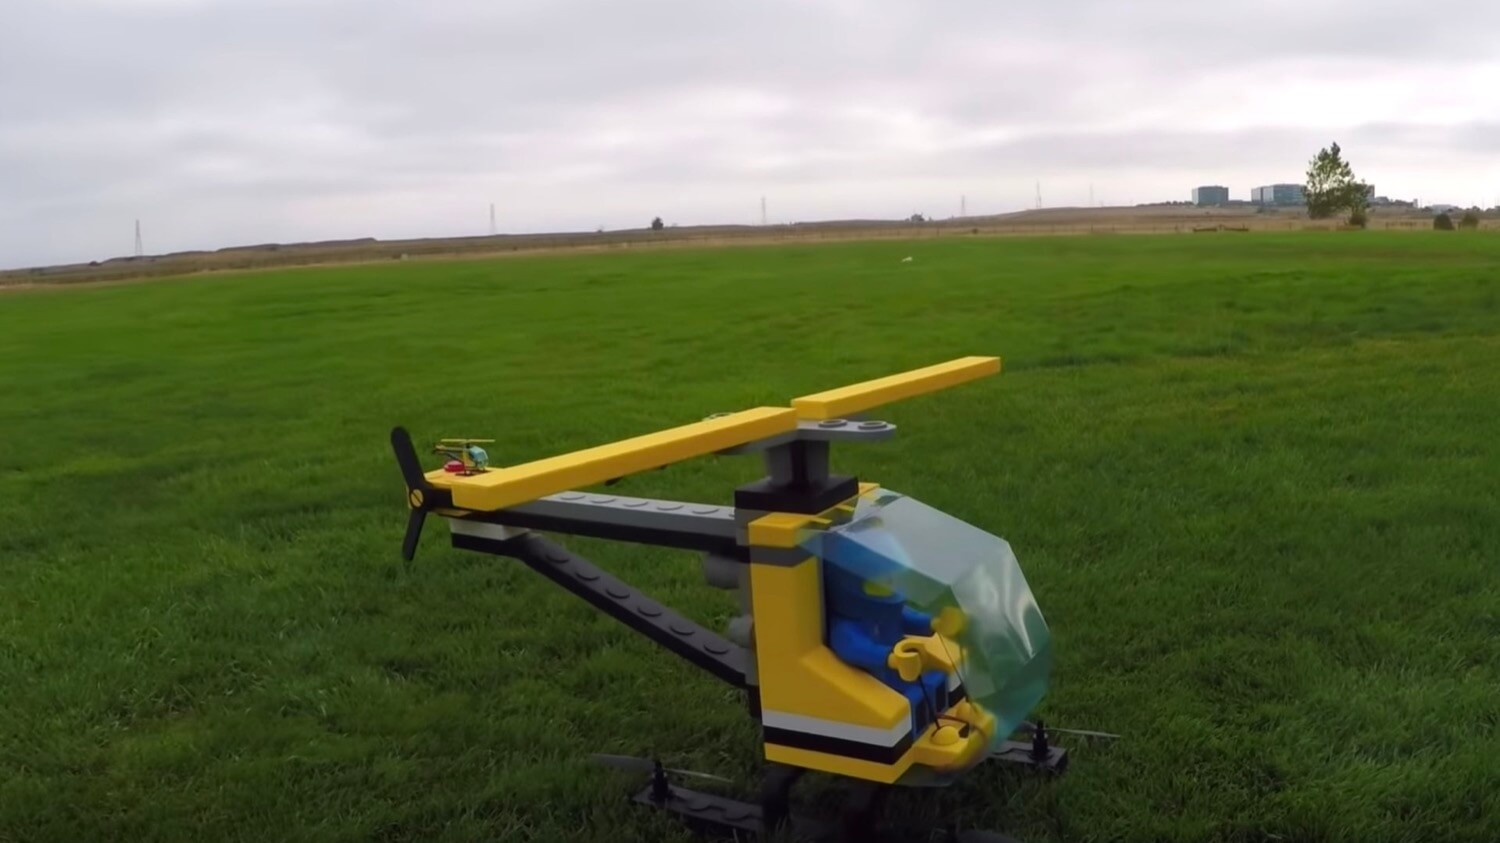 Amateur quadcopters have built a giant LEGO helicopter